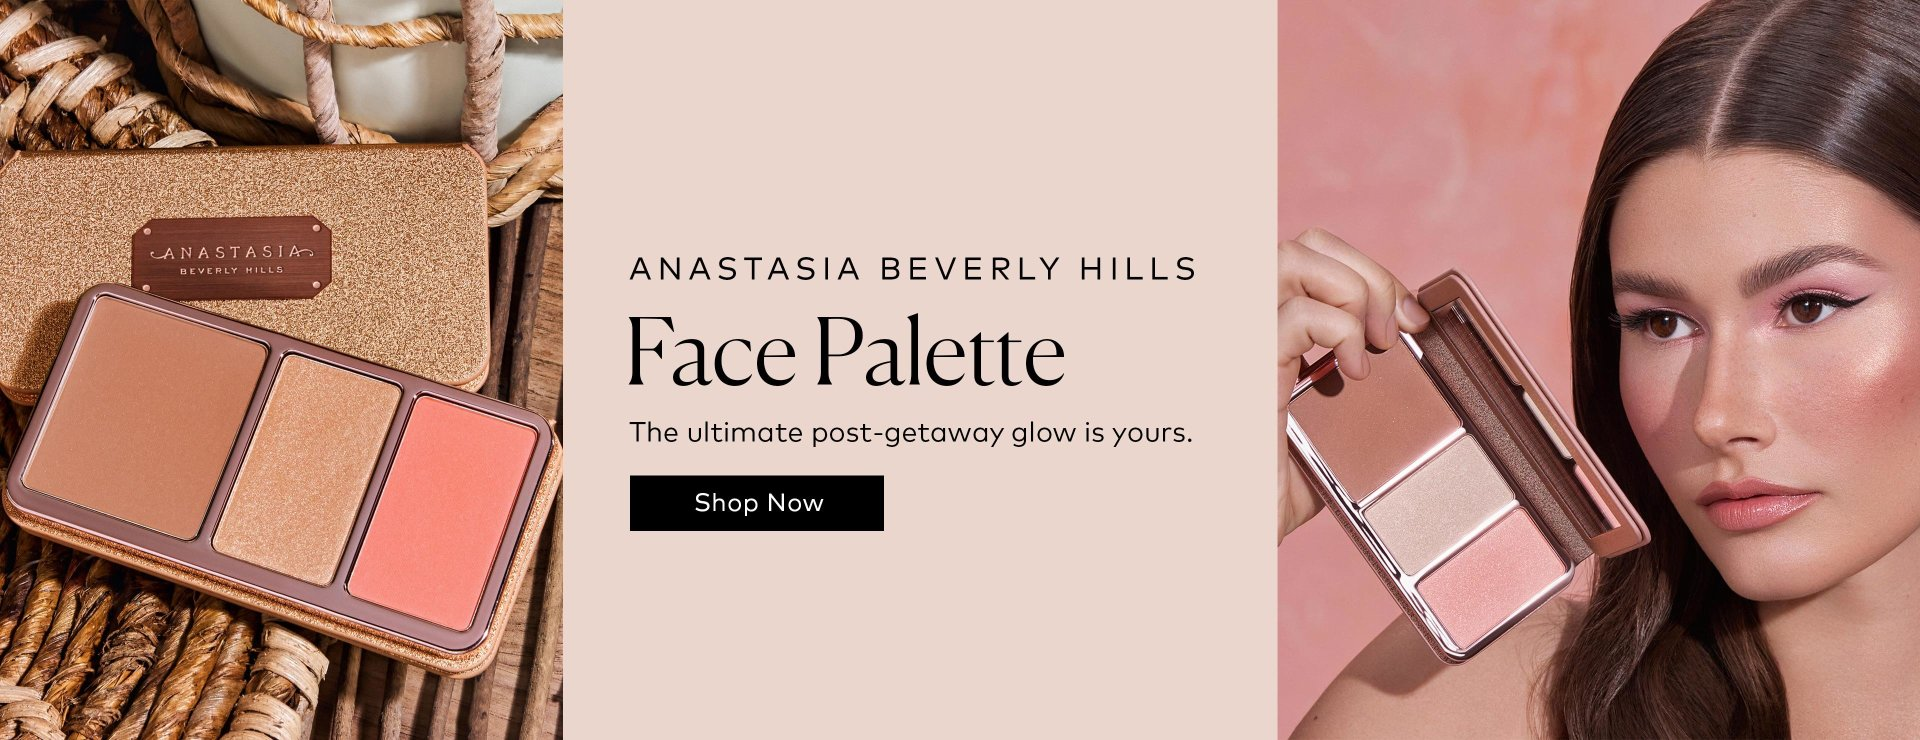 Shop Anastasia Beverly Hills Face Palette on Beautylish.com